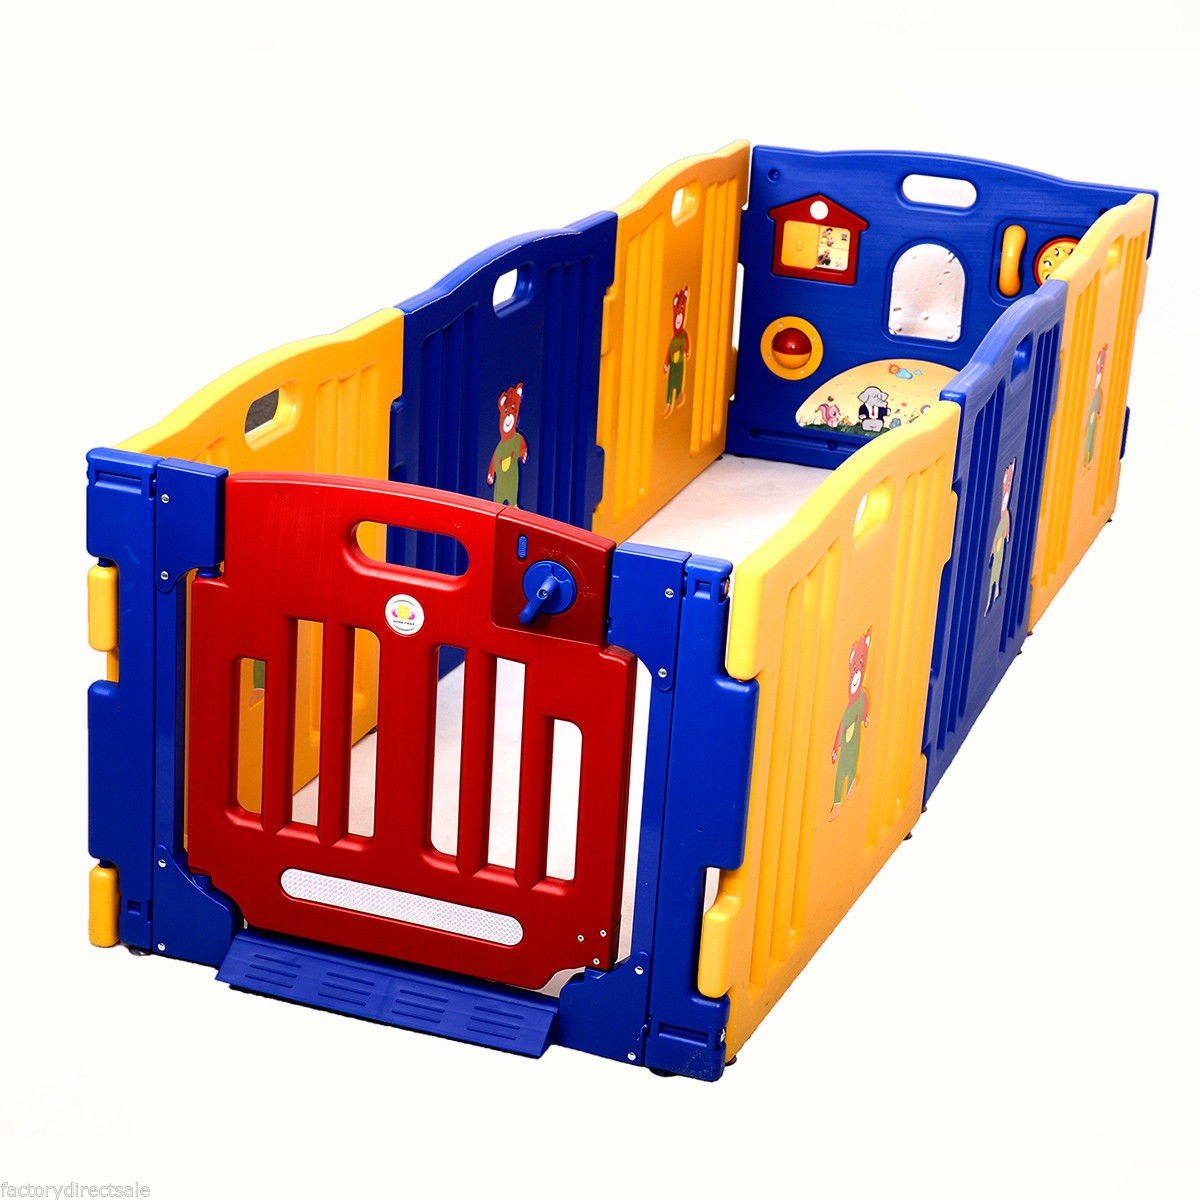 8 Panel Safety Baby Playpen Kids Indoor/Outdoor Play Center With Ebook by MRT SUPPLY (Image #3)